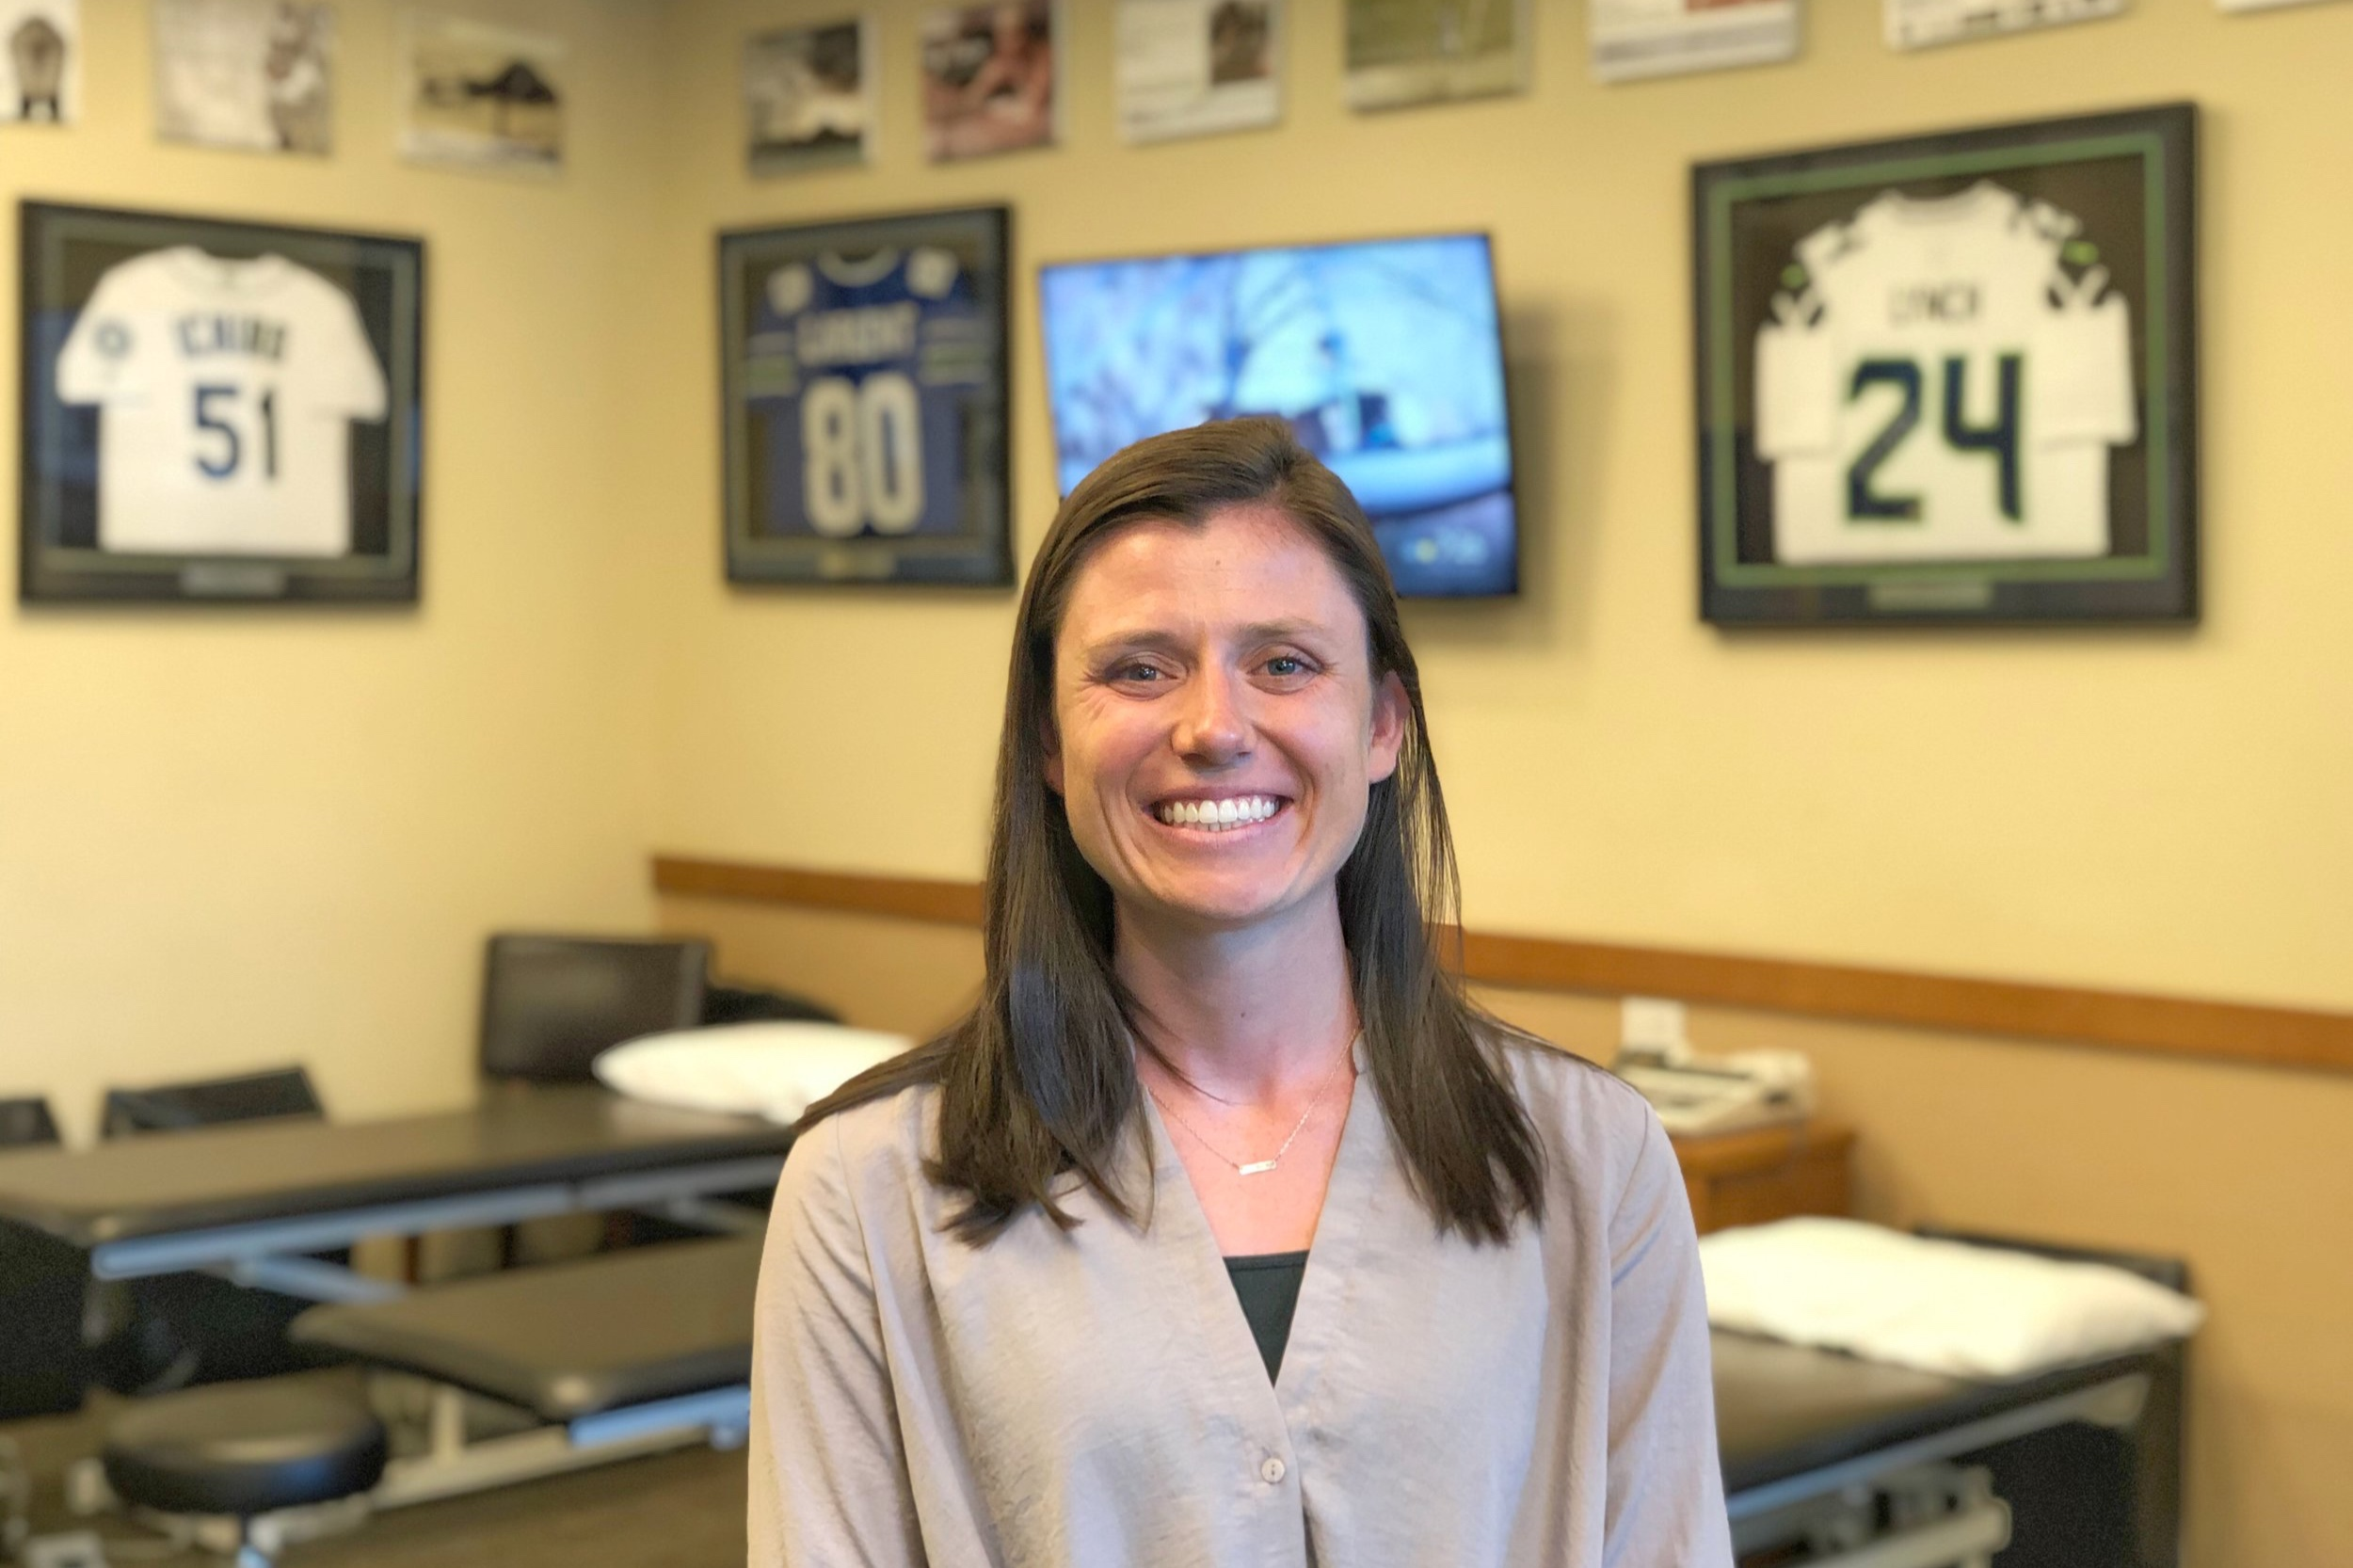 Kerri SmithPT, DPT - Kerri grew up in Kirkland, WA and attended The Overlake School where she played soccer and lacrosse. Kerri met Ben Wobker, Mandie Majerus, and the staff at Lake Washington Physical Therapy initially as a patient where they gave her the tools to continue being active. In the following years, she shadowed Ben and Mandie, which sparked her interest in the career of physical therapy.After high school, Kerri moved south to The University of Puget Sound. During her time at Puget Sound, she competed on the varsity lacrosse team and earned her B.S. in Exercise Science, with an emphasis in Bioethics. Kerri continued shadowing …….Continue »